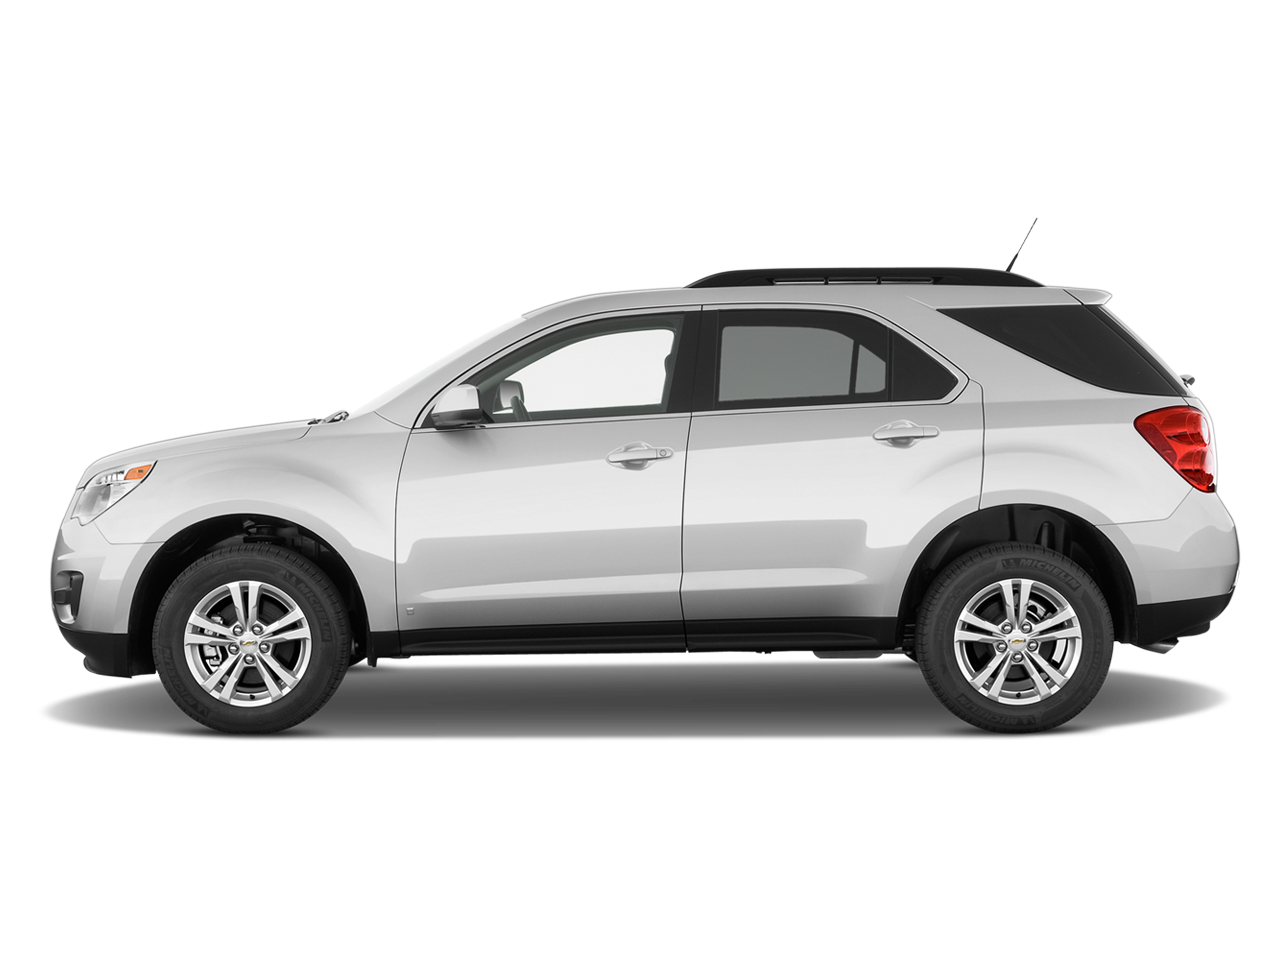 car png - Google 検索 - White Suv PNG